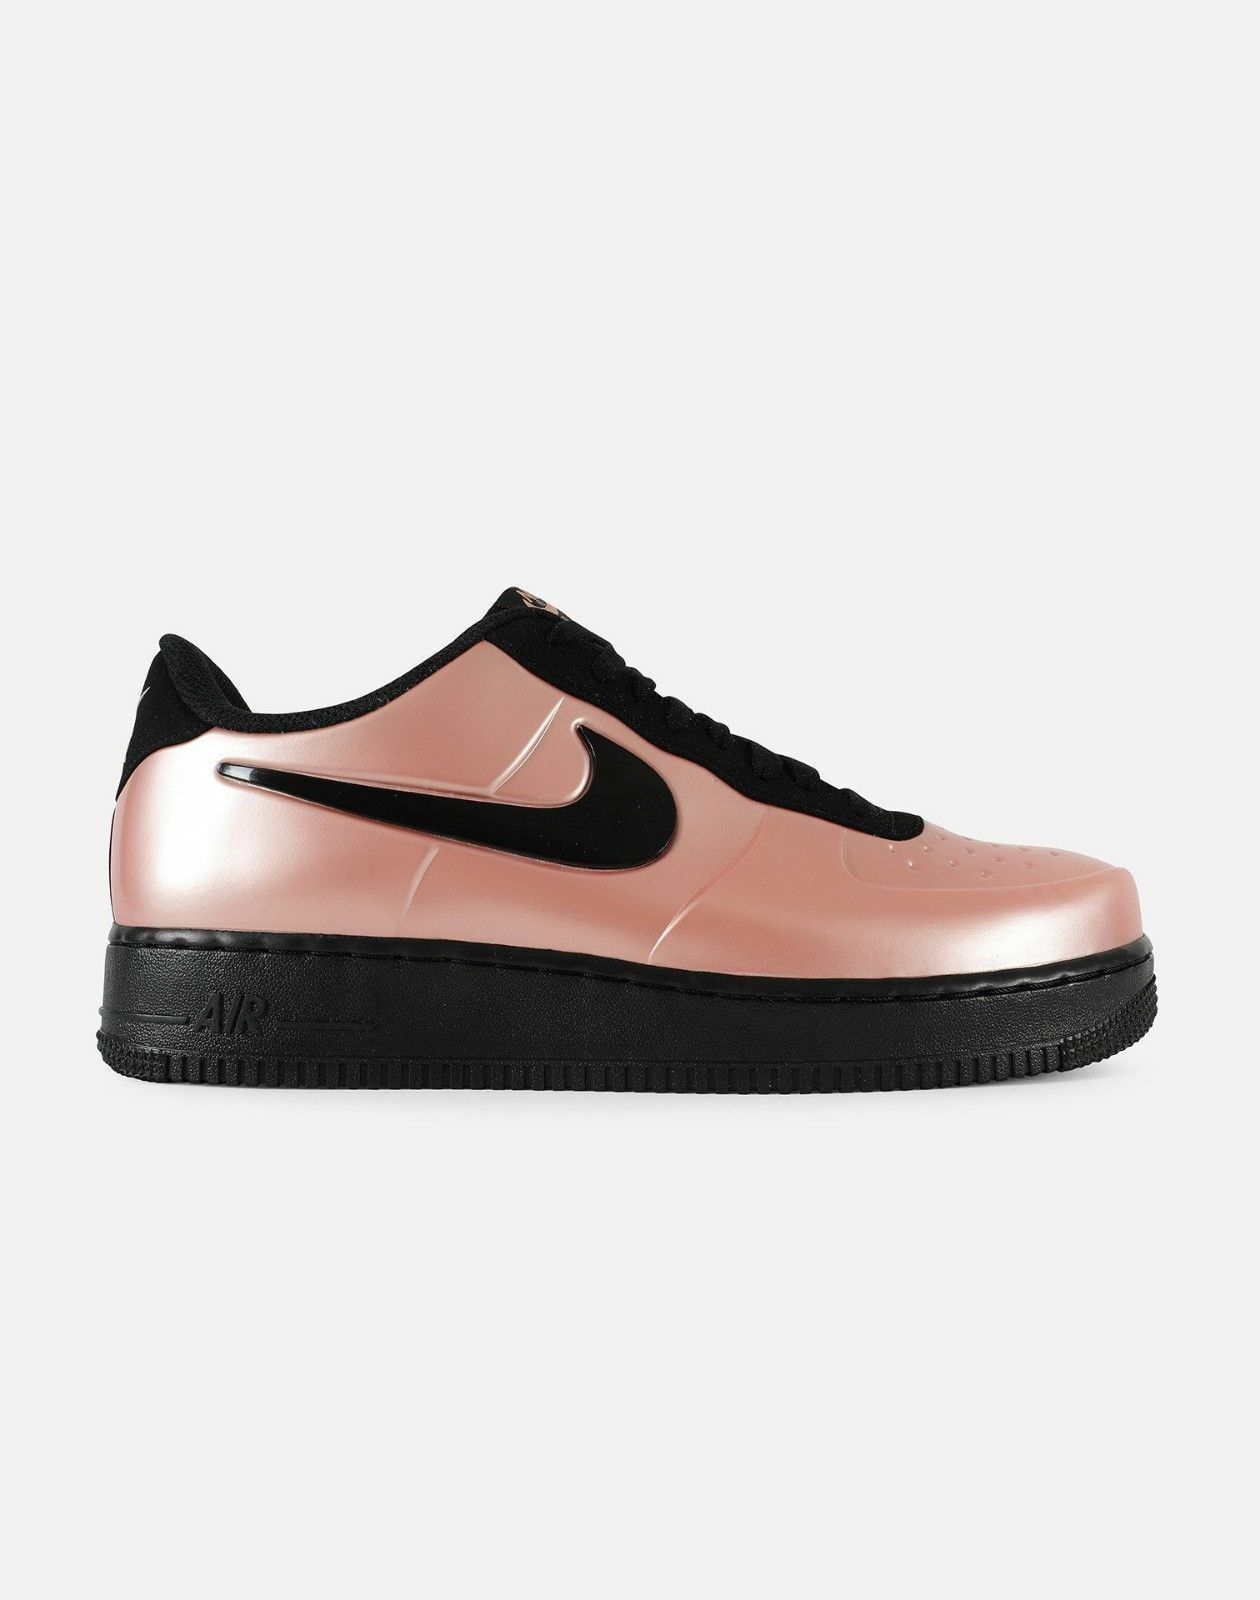 Nike Air Force One 1 Foamposite Cup Sole CORAL STARDUST AF1 AJ3664-600 Mens 8.5